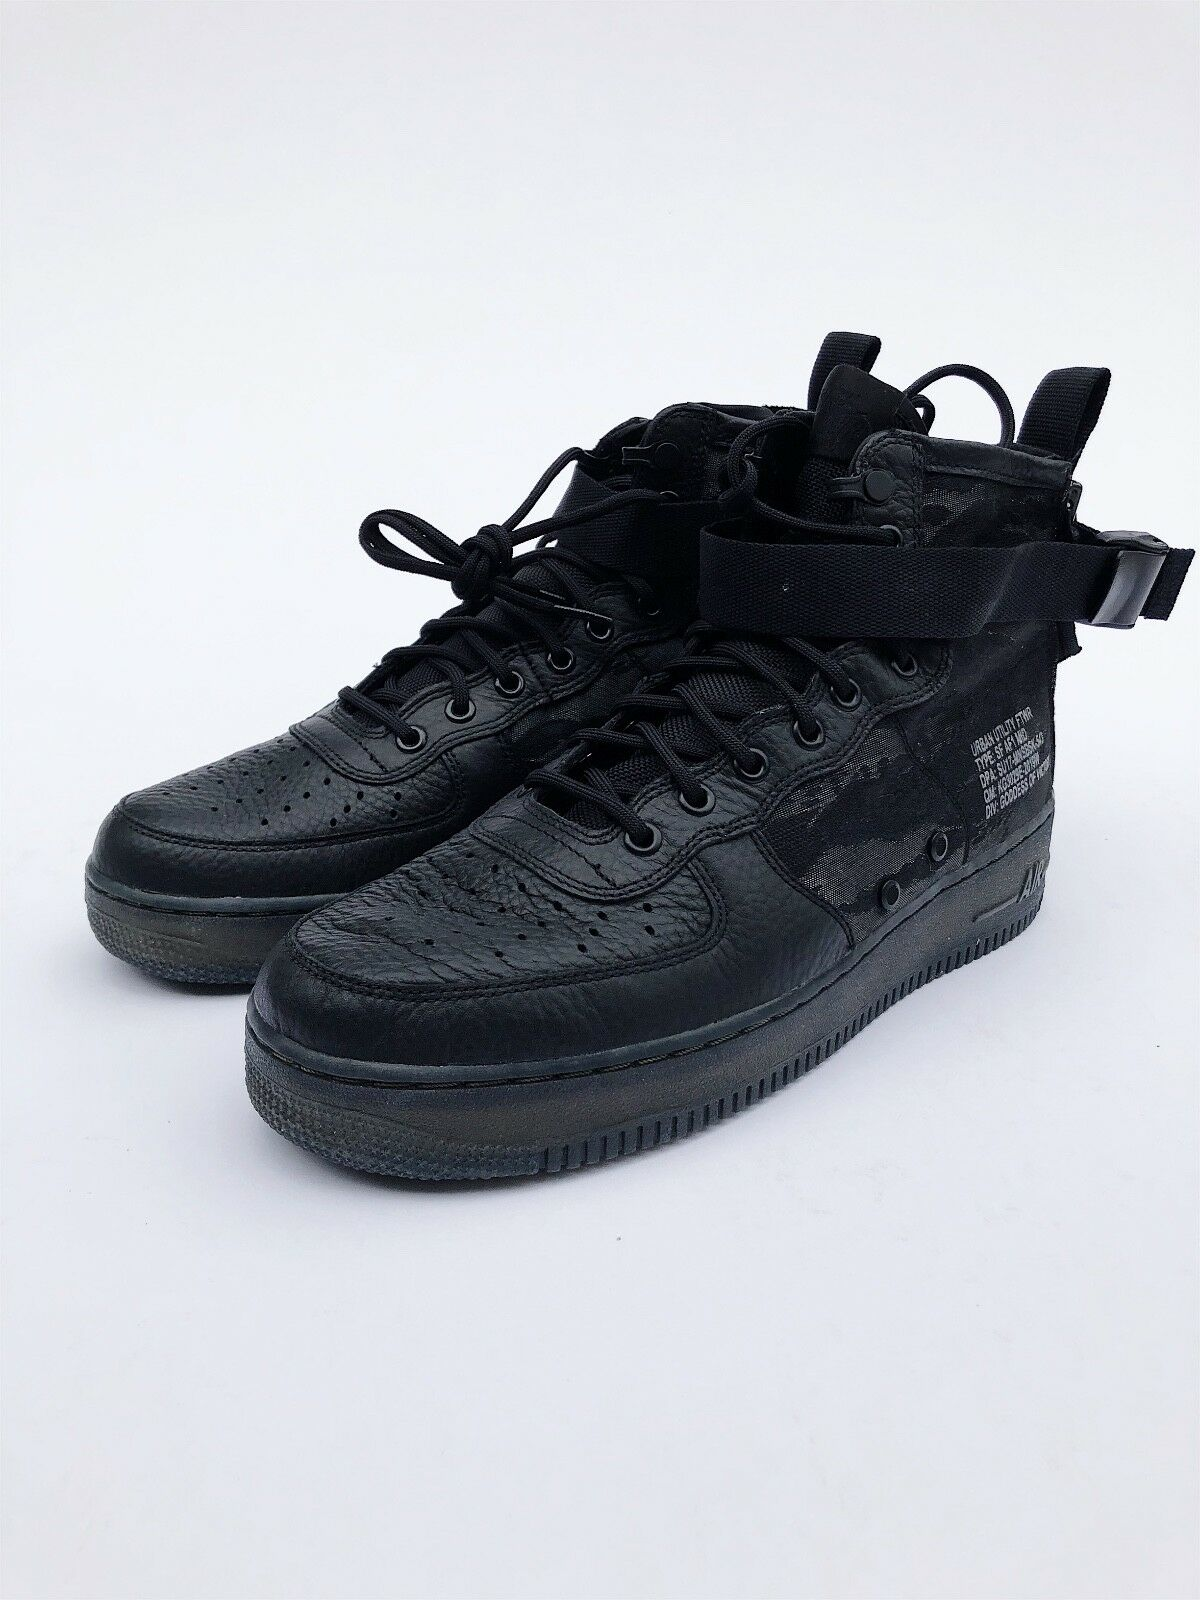 Nike Special Field Air Force 1 Mid 'Tiger Camo' Size 11 (AA73345 001)